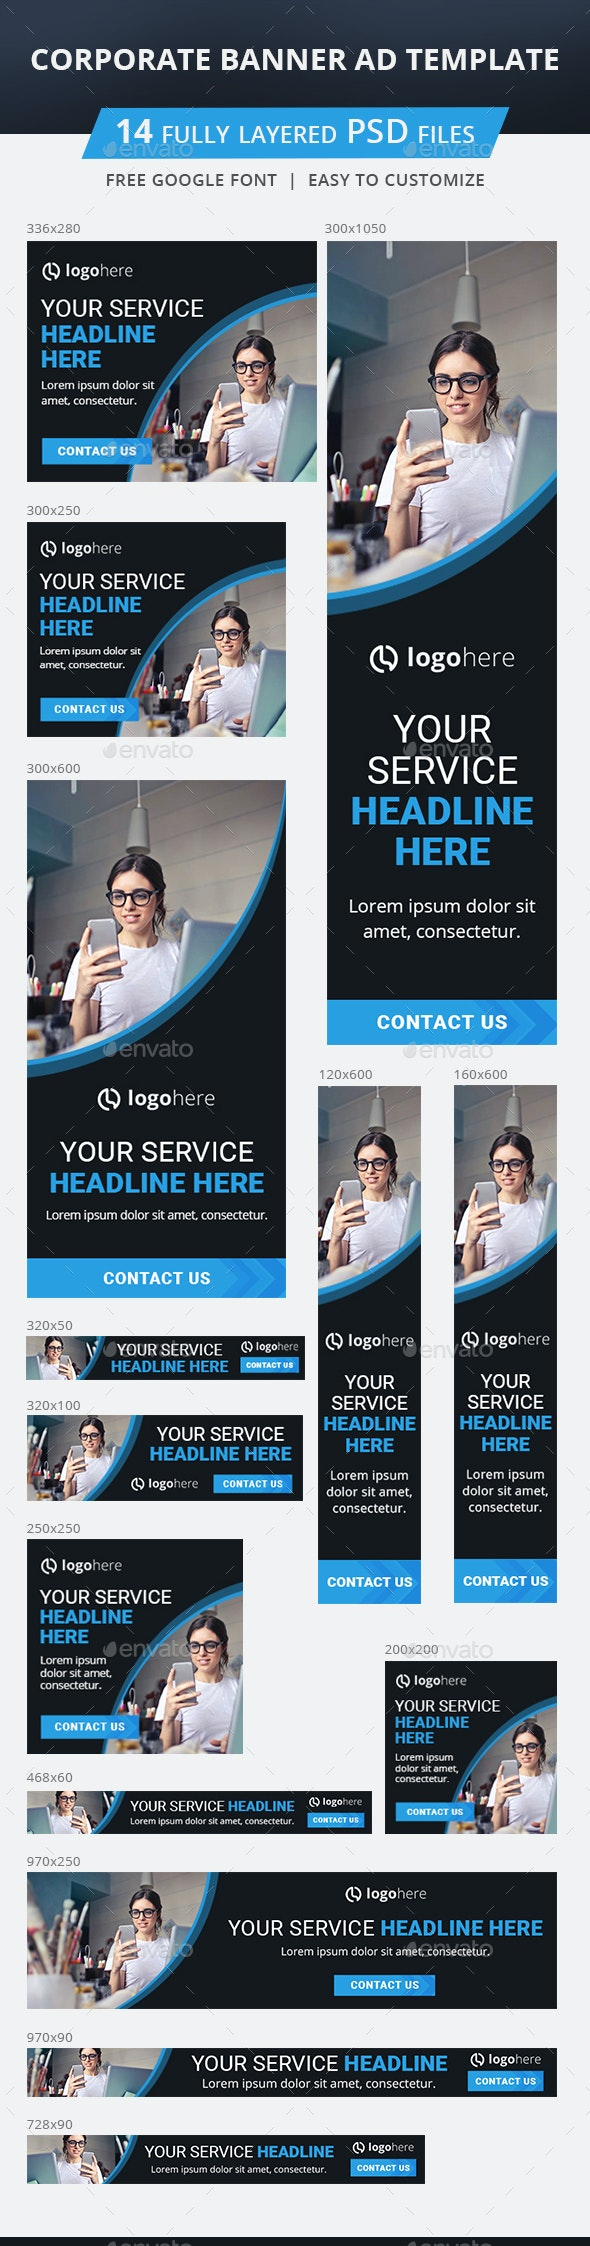 Corporate Banner Ad Template - Banners & Ads Web Elements